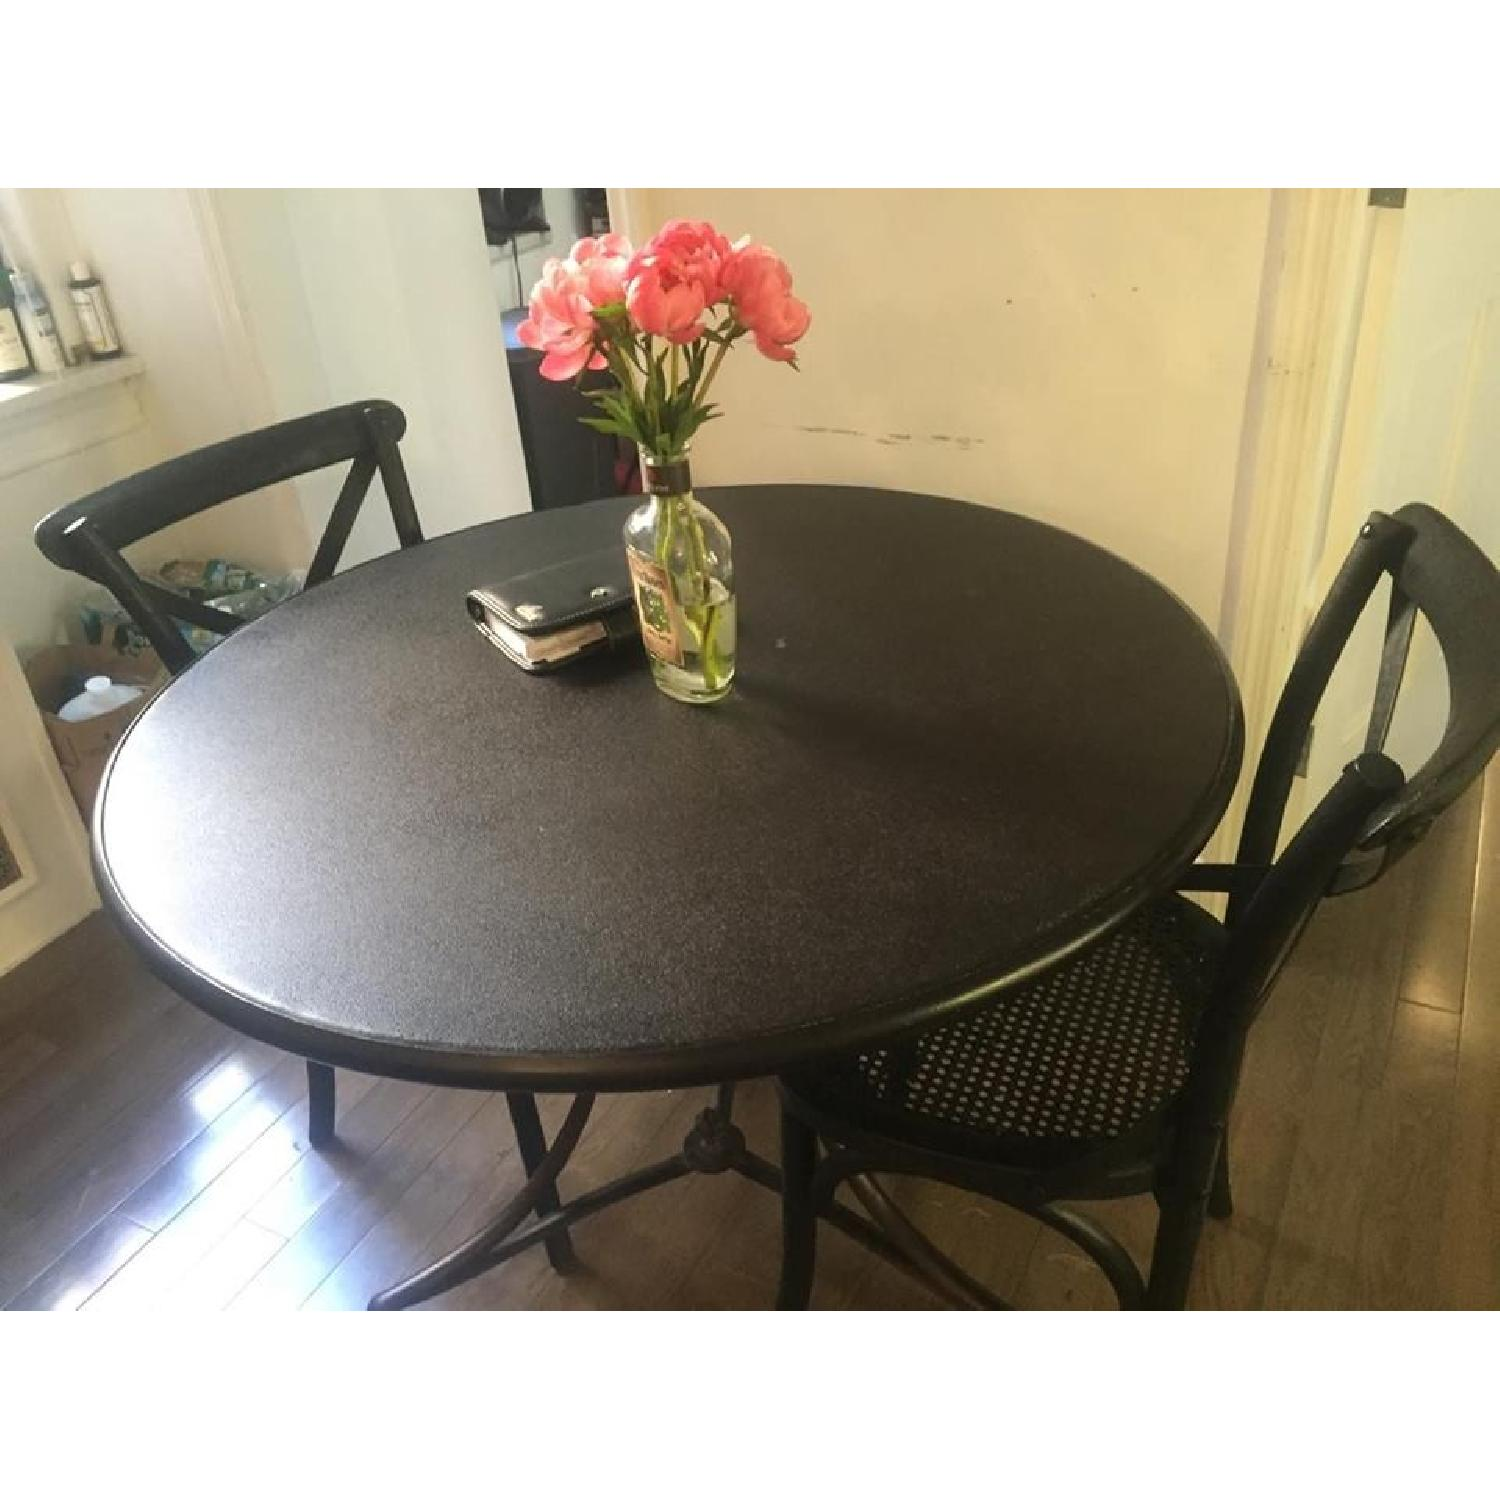 Restoration Hardware 19th C. French Lion's Foot Brasserie Table w/ 2 Chairs - image-3